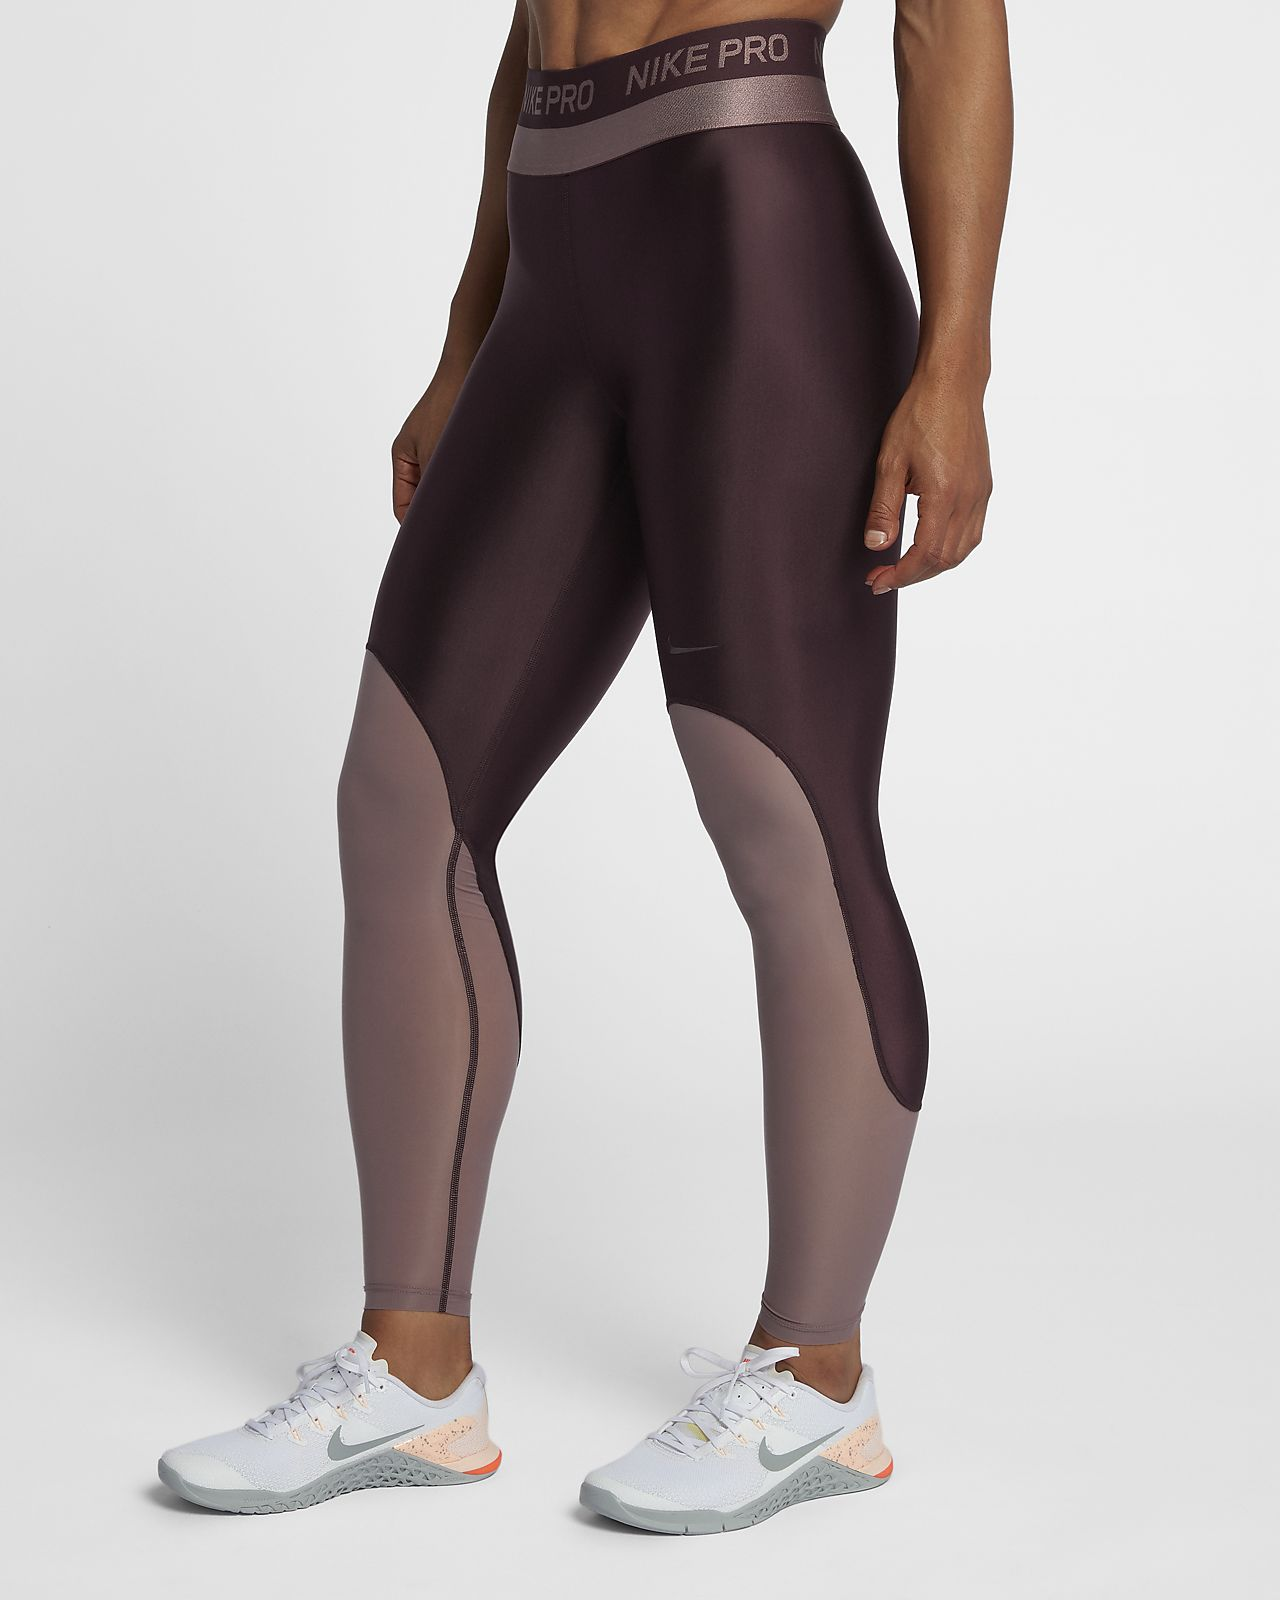 db0181b584 Nike Pro HyperCool Women s Mid-Rise Training Tights. Nike.com GB